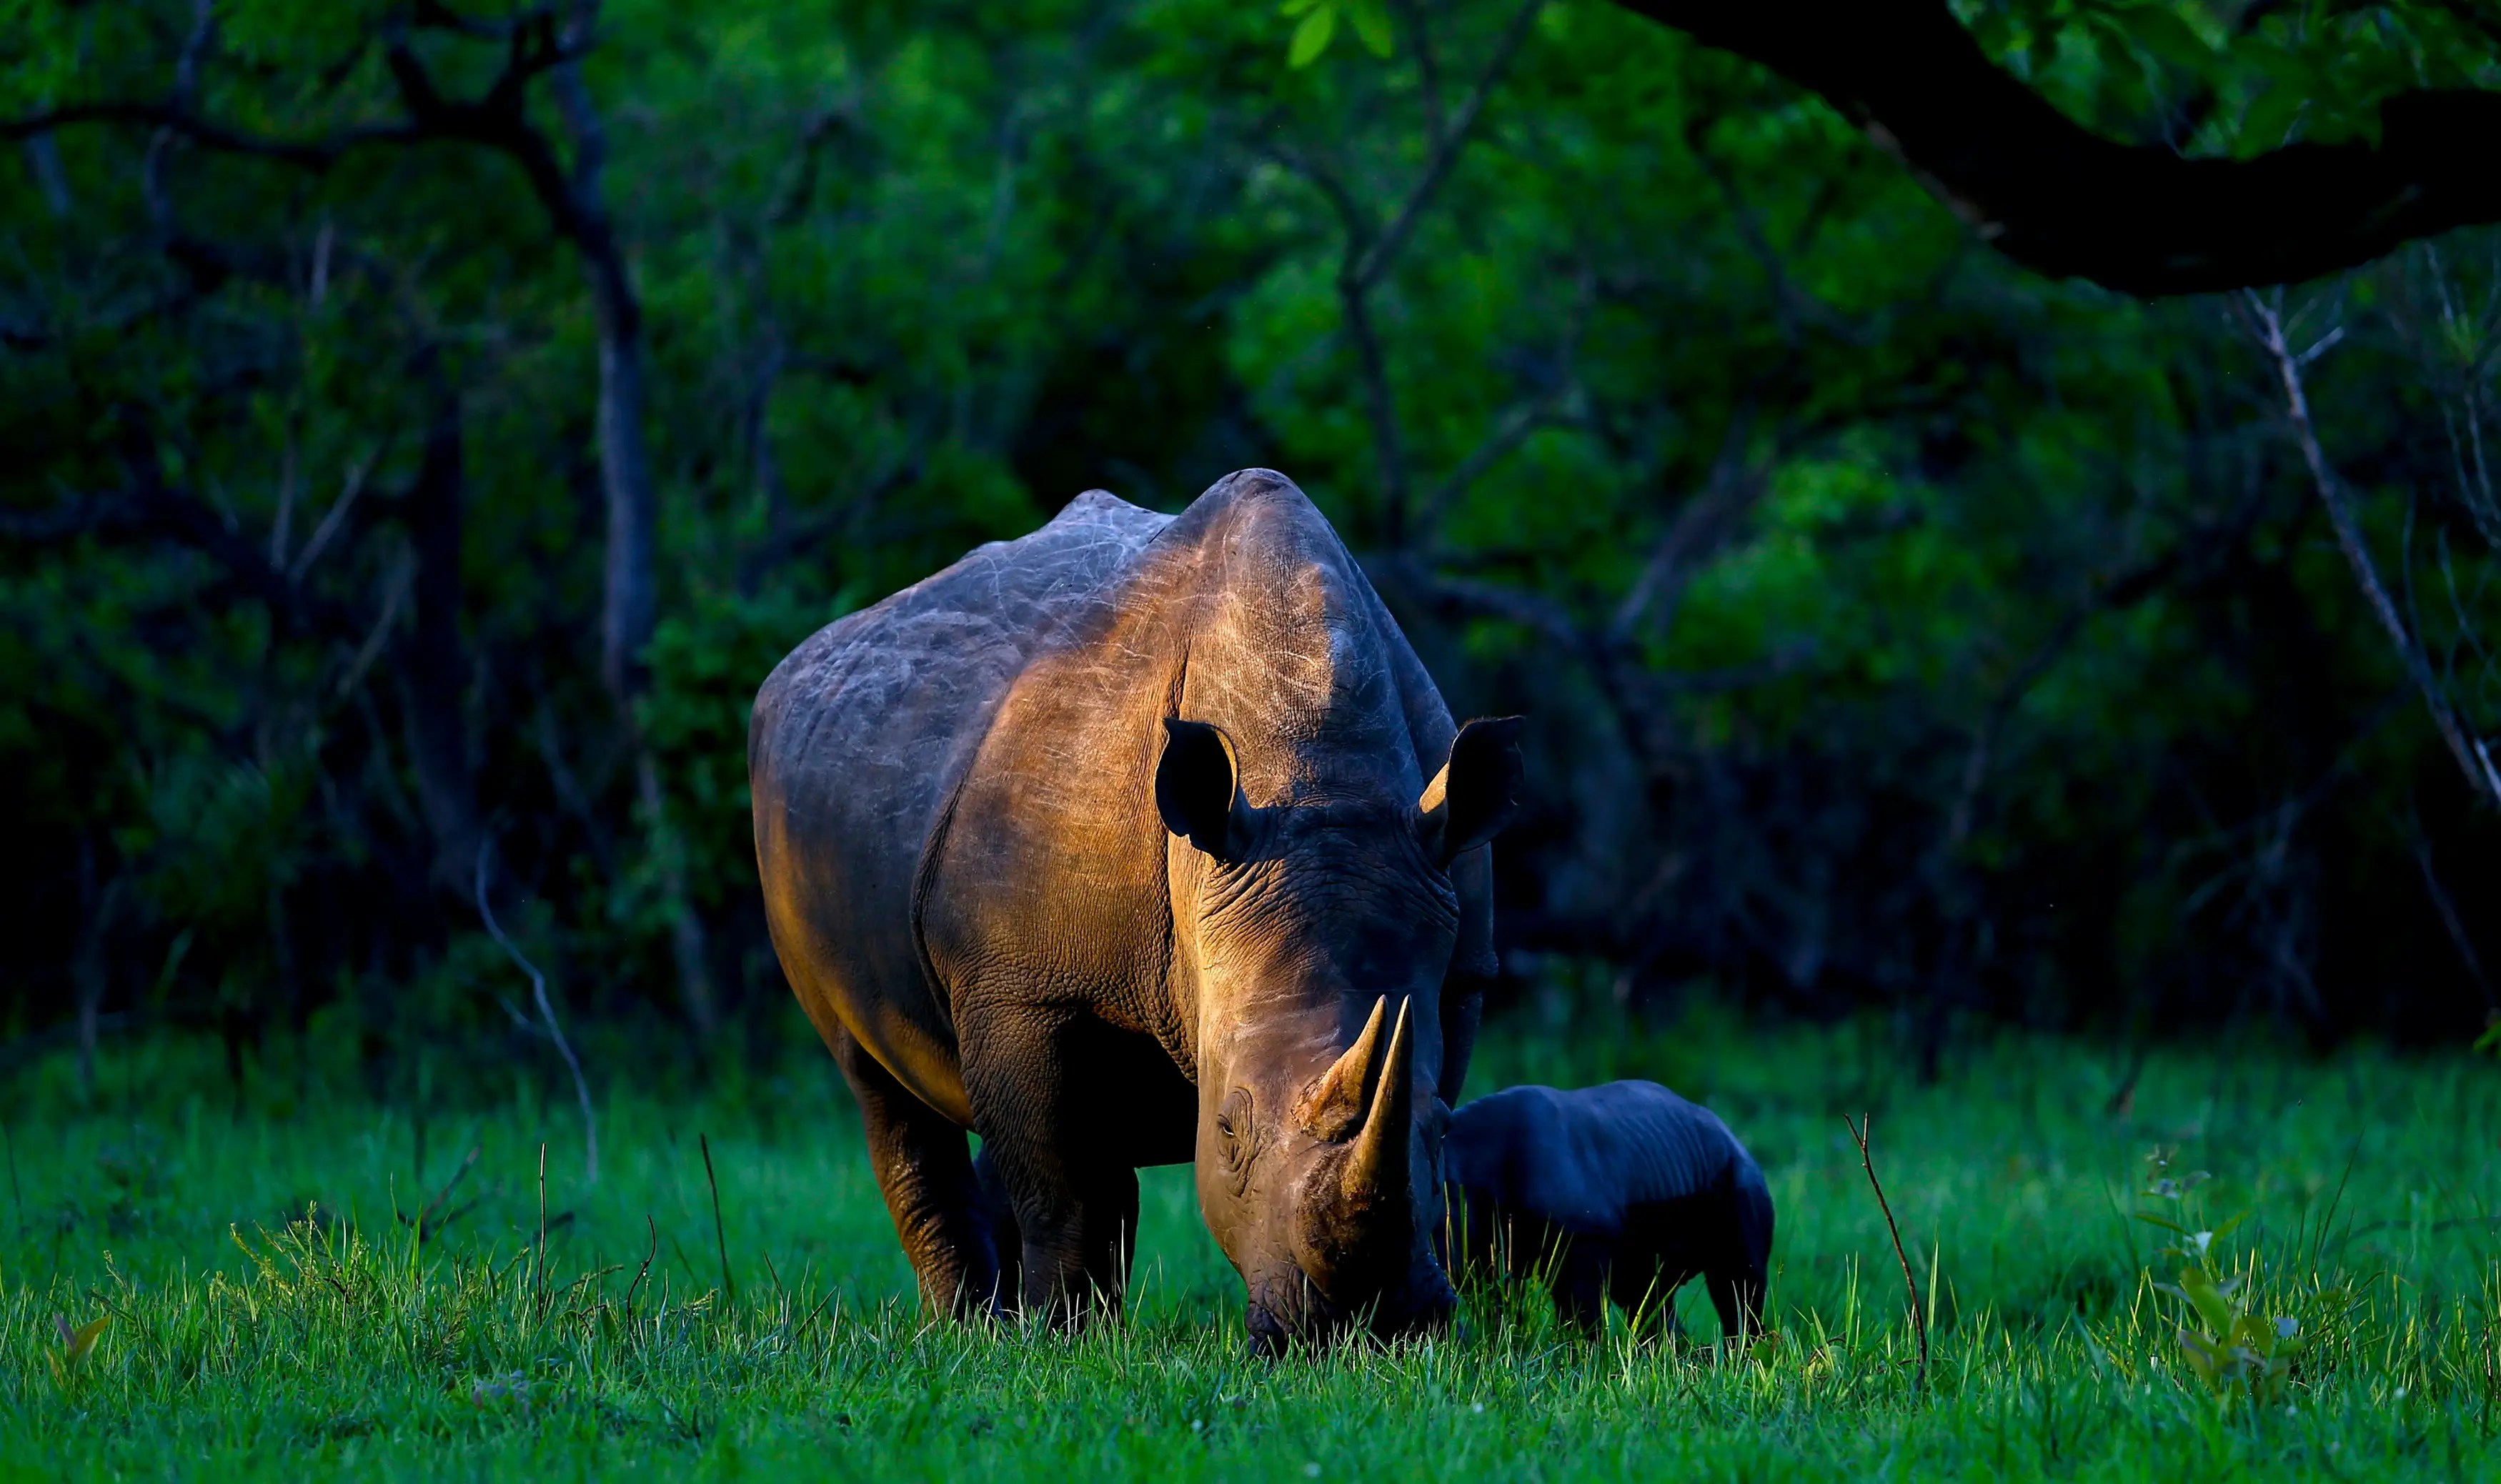 A southern white rhino named Bella eats with her day-old baby at Ziwa Rhino Sanctuary in central Uganda.